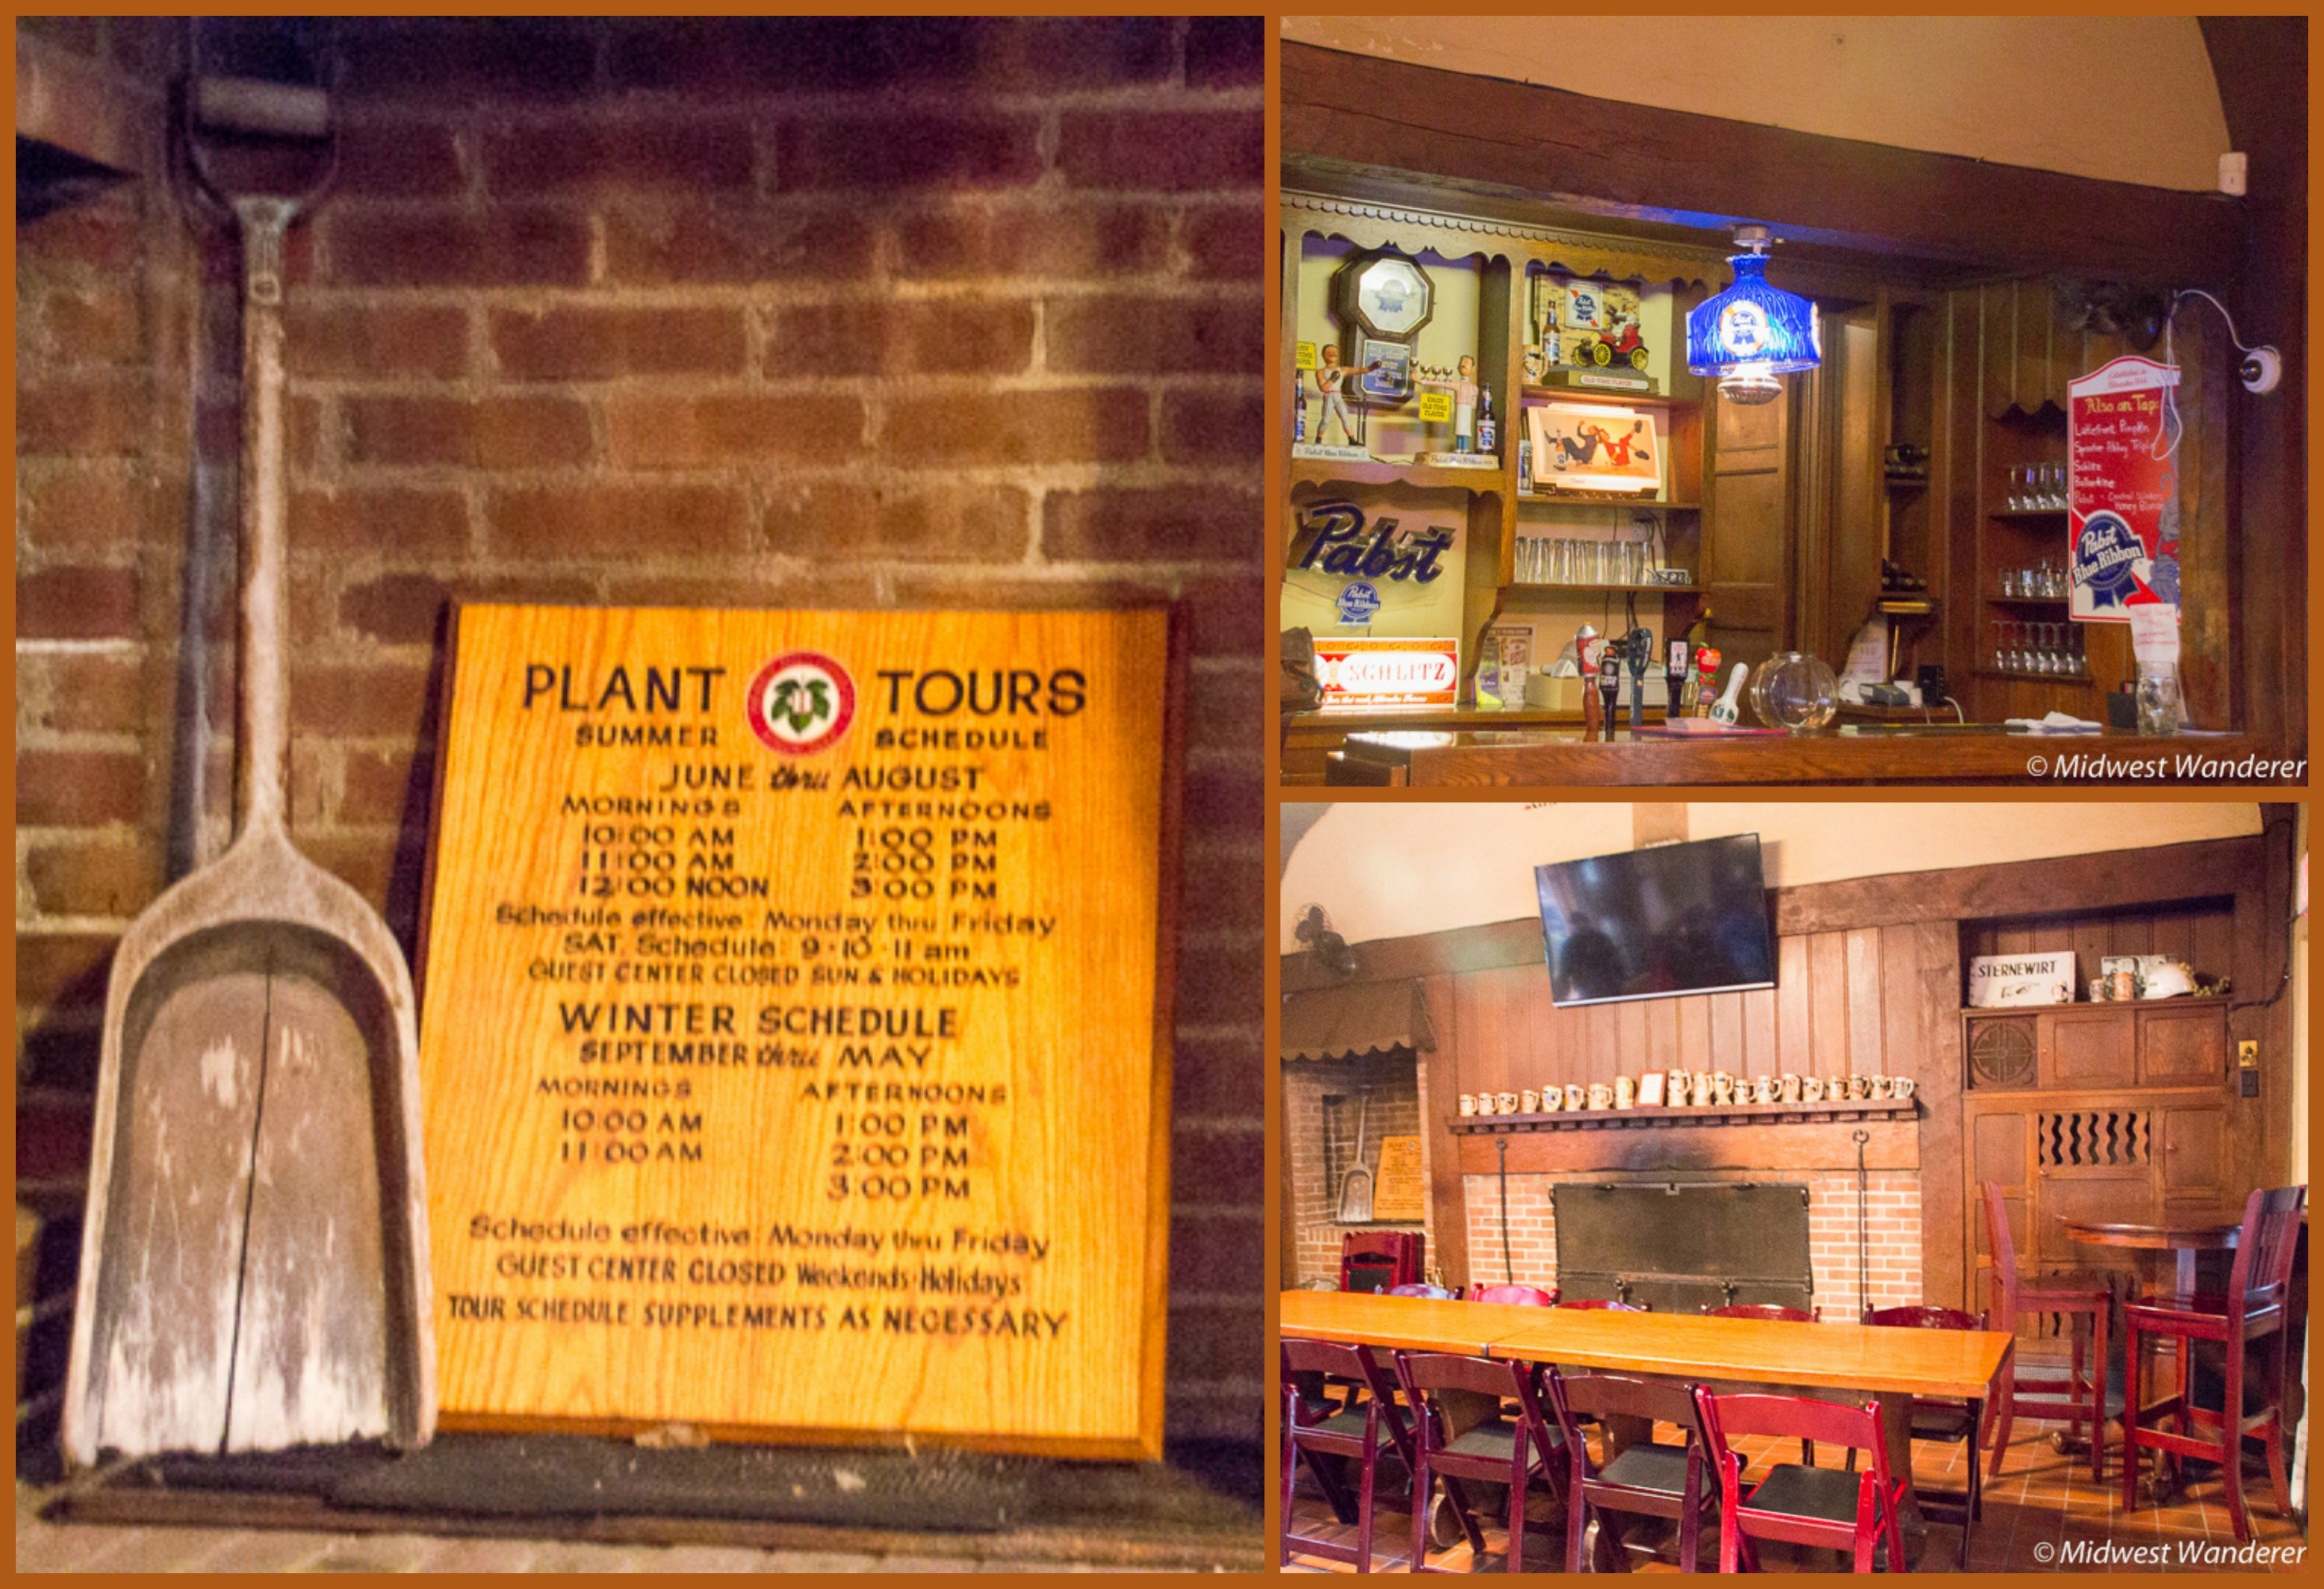 Historic Pabst Brewery Visitor Center